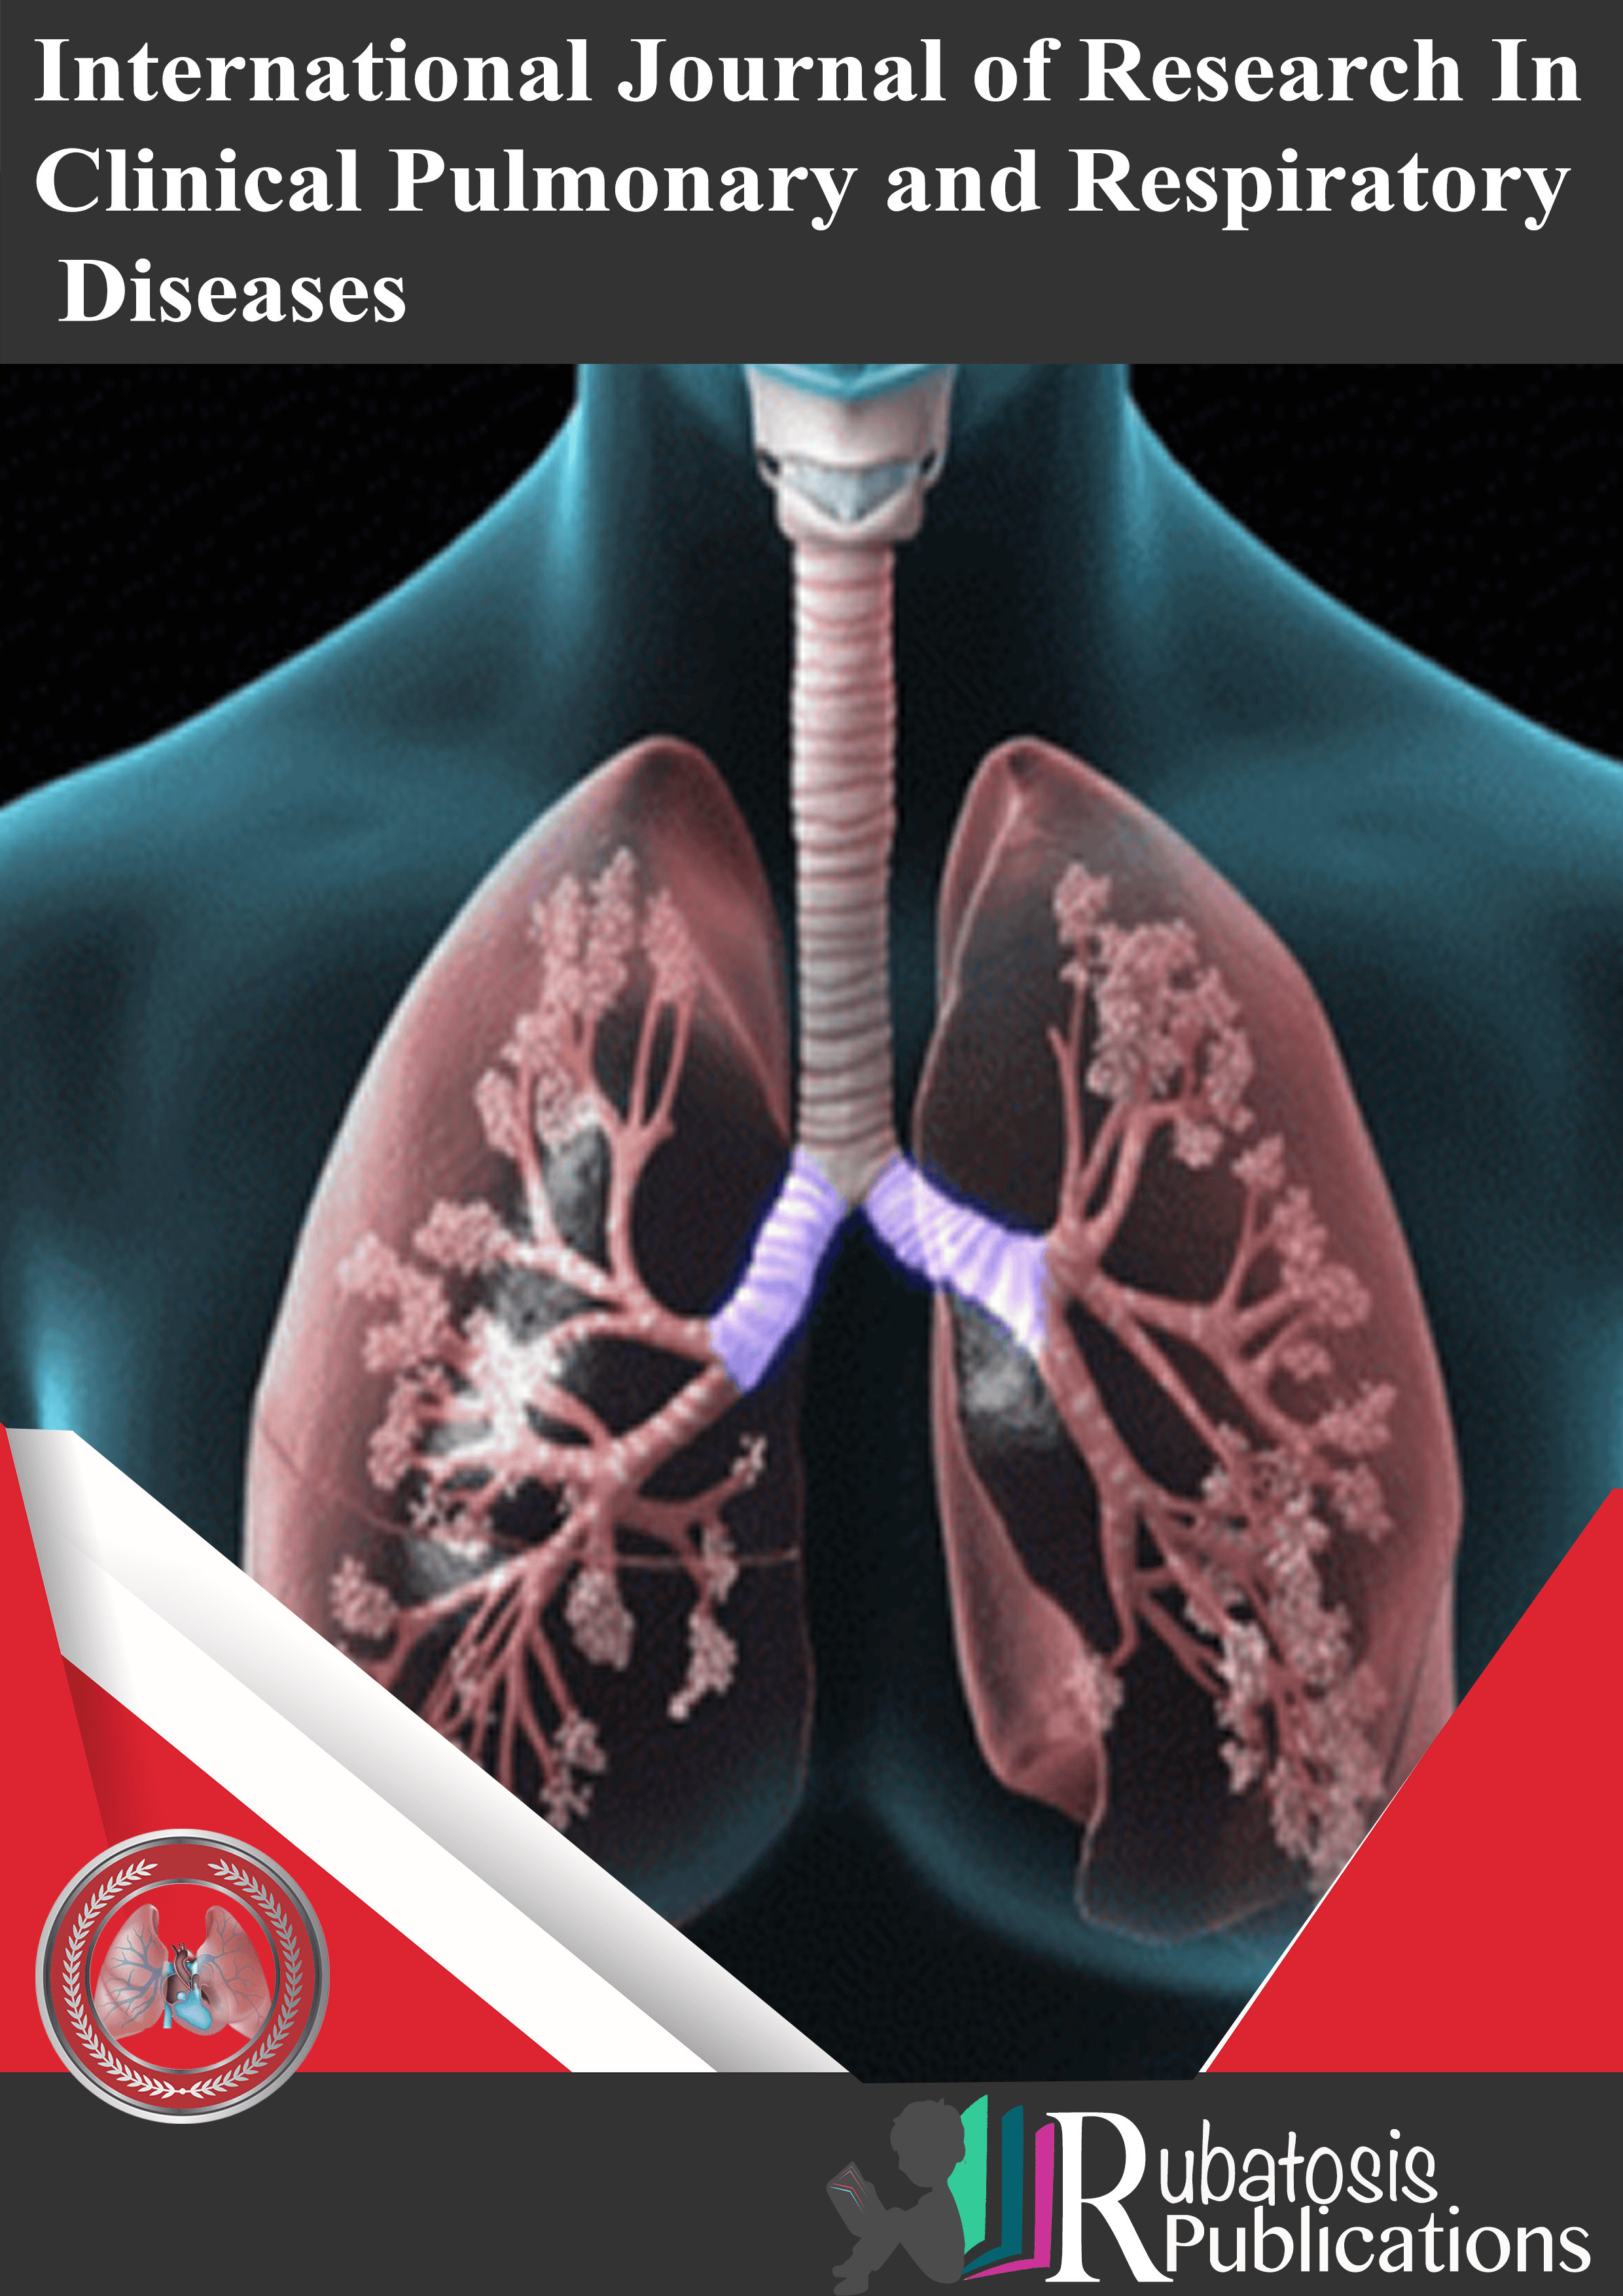 International Journal Of Research In Clinical Pulmonary And Respiratory Diseases